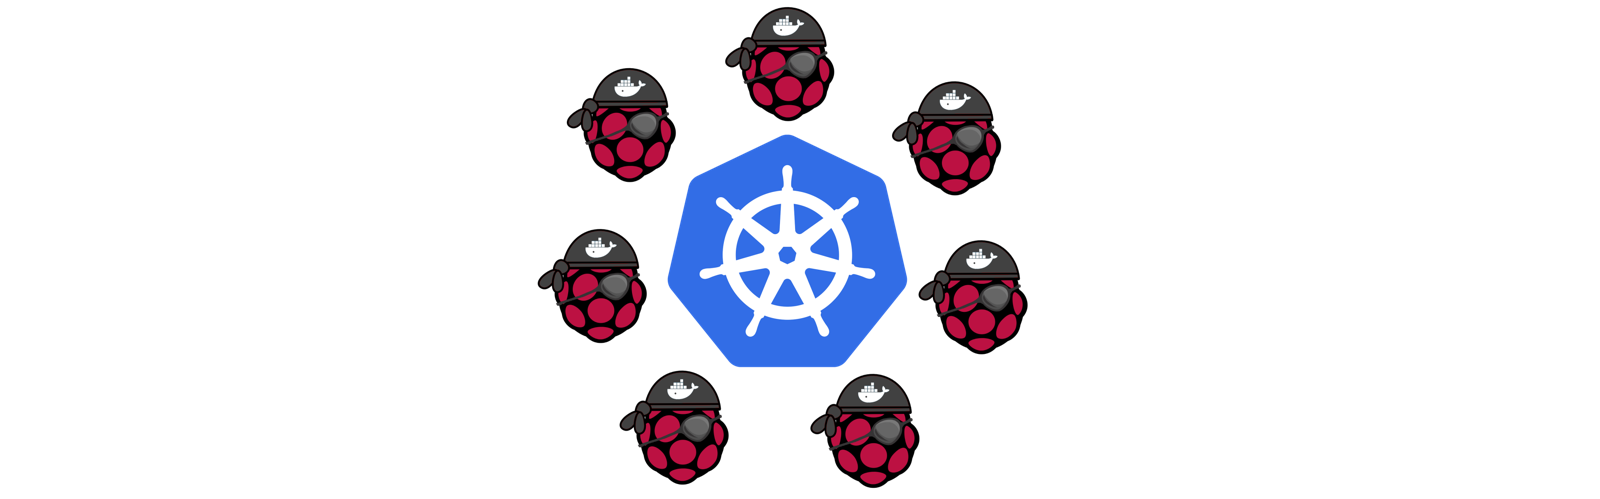 Build Your Own Cloud with Kubernetes and Some Raspberry Pi